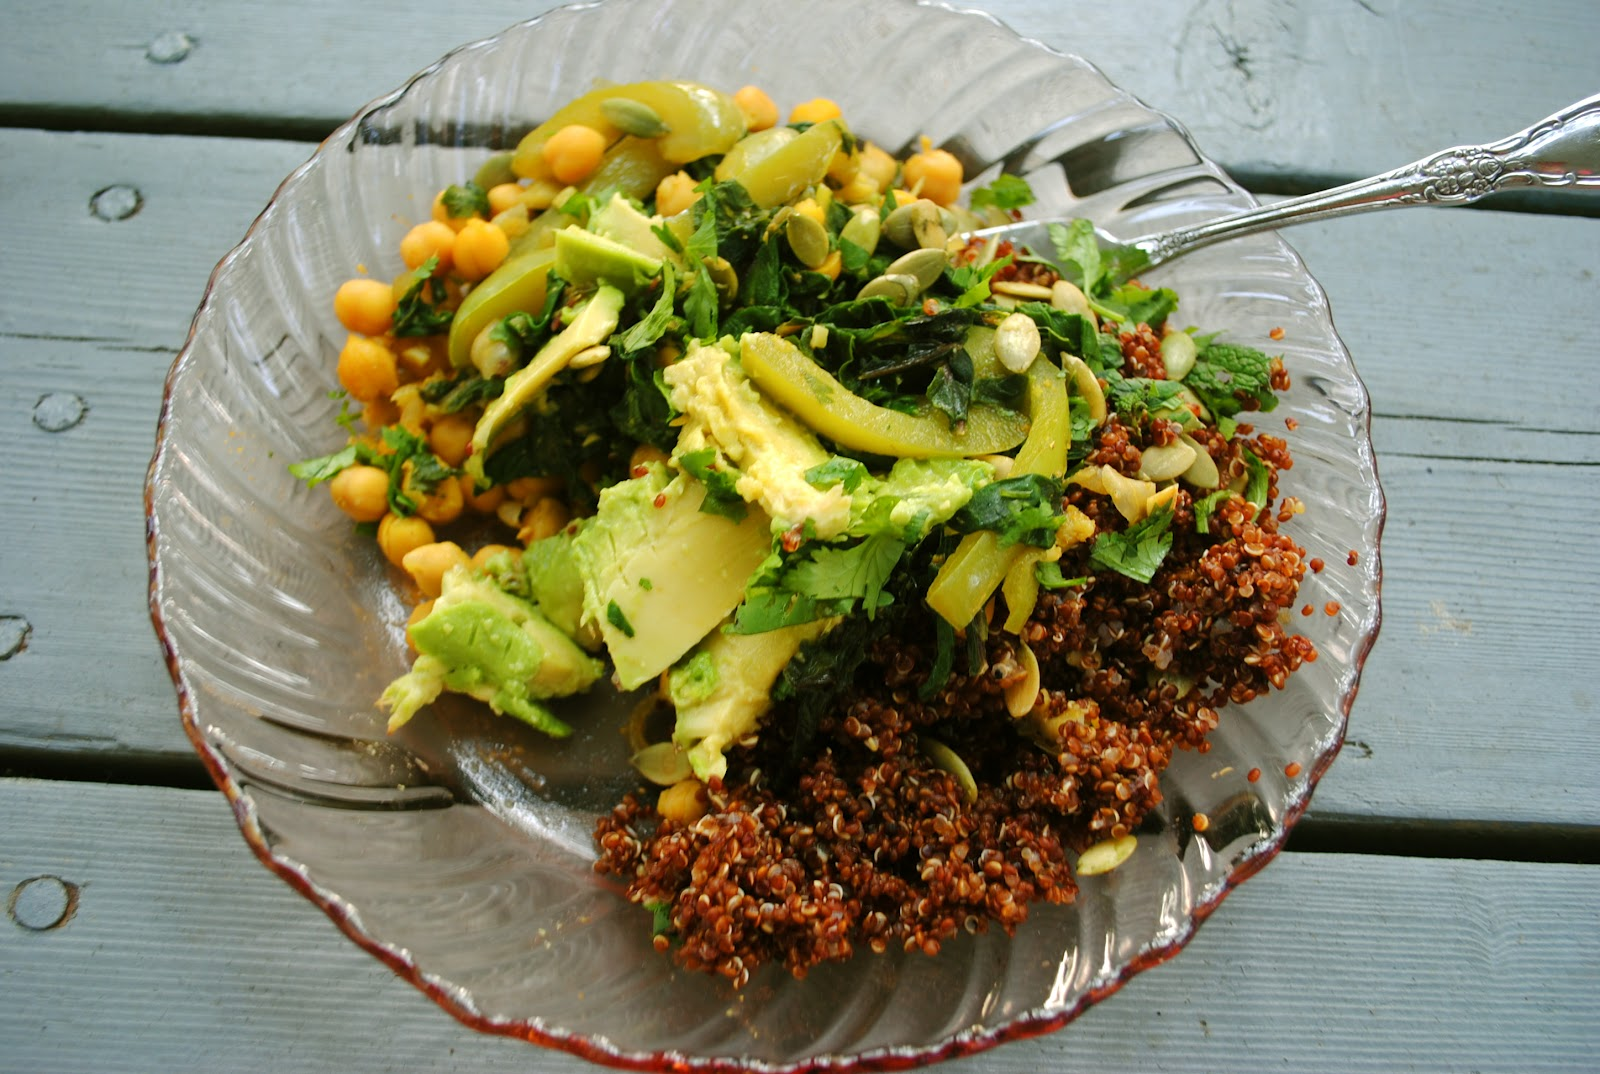 Divide quinoa among four bowls and top with vegetables, avocado, and ...